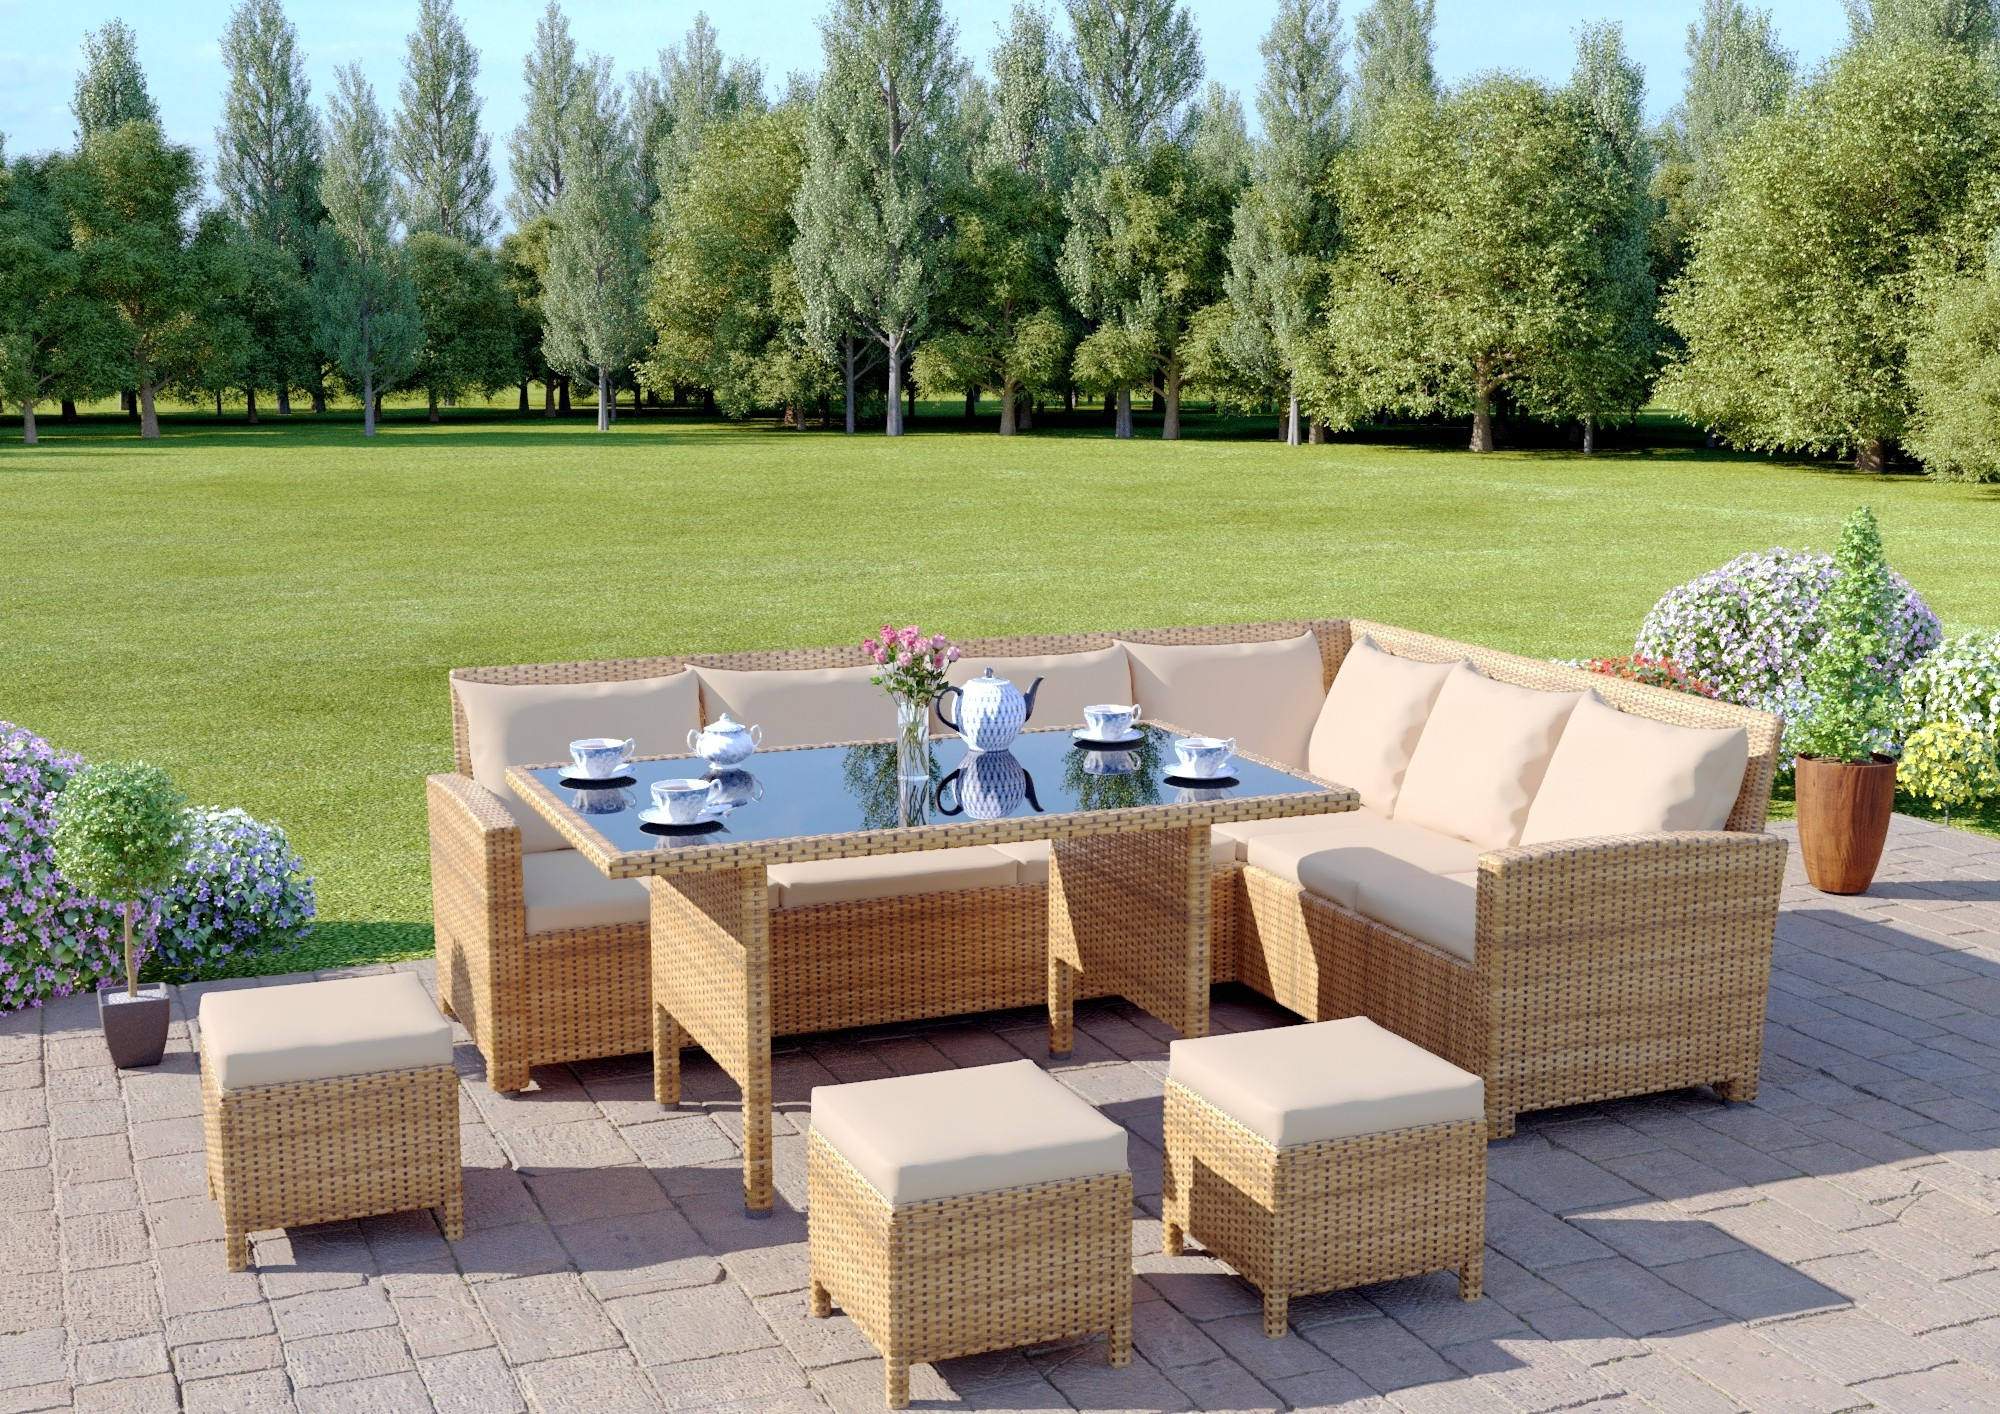 Garden Dining Tables In Favorite 9 Seat Light Brown Rattan Garden Furniture Corner Sofa Dining Set (View 10 of 25)